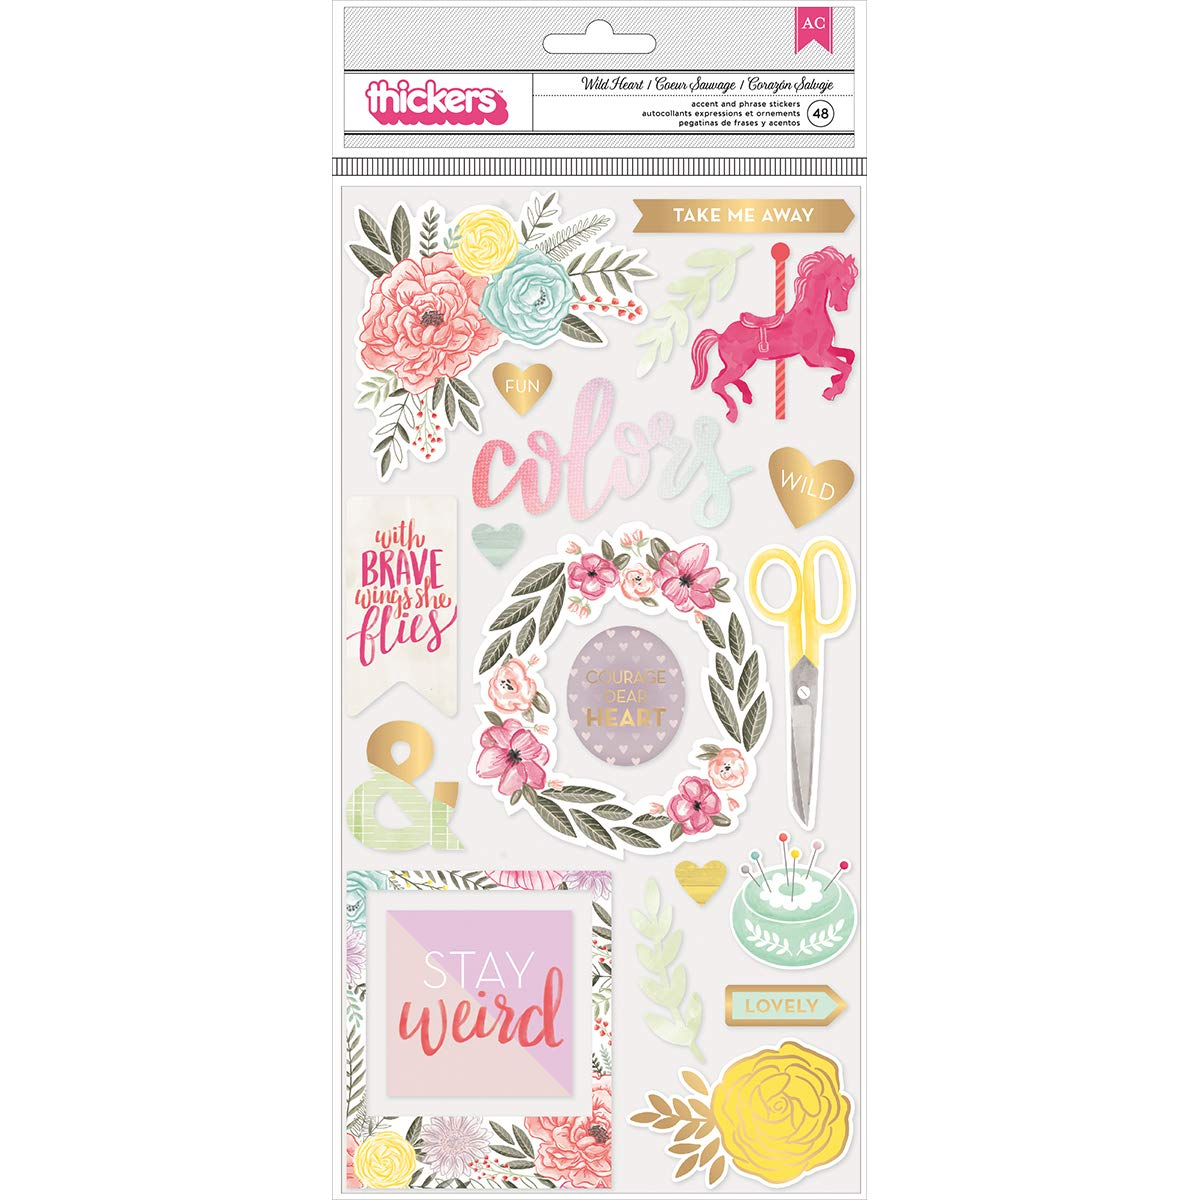 Pk Paislee Take Me Away Collection Thickers with Foil Accents Chipboard Wild Heart (6 Pack)